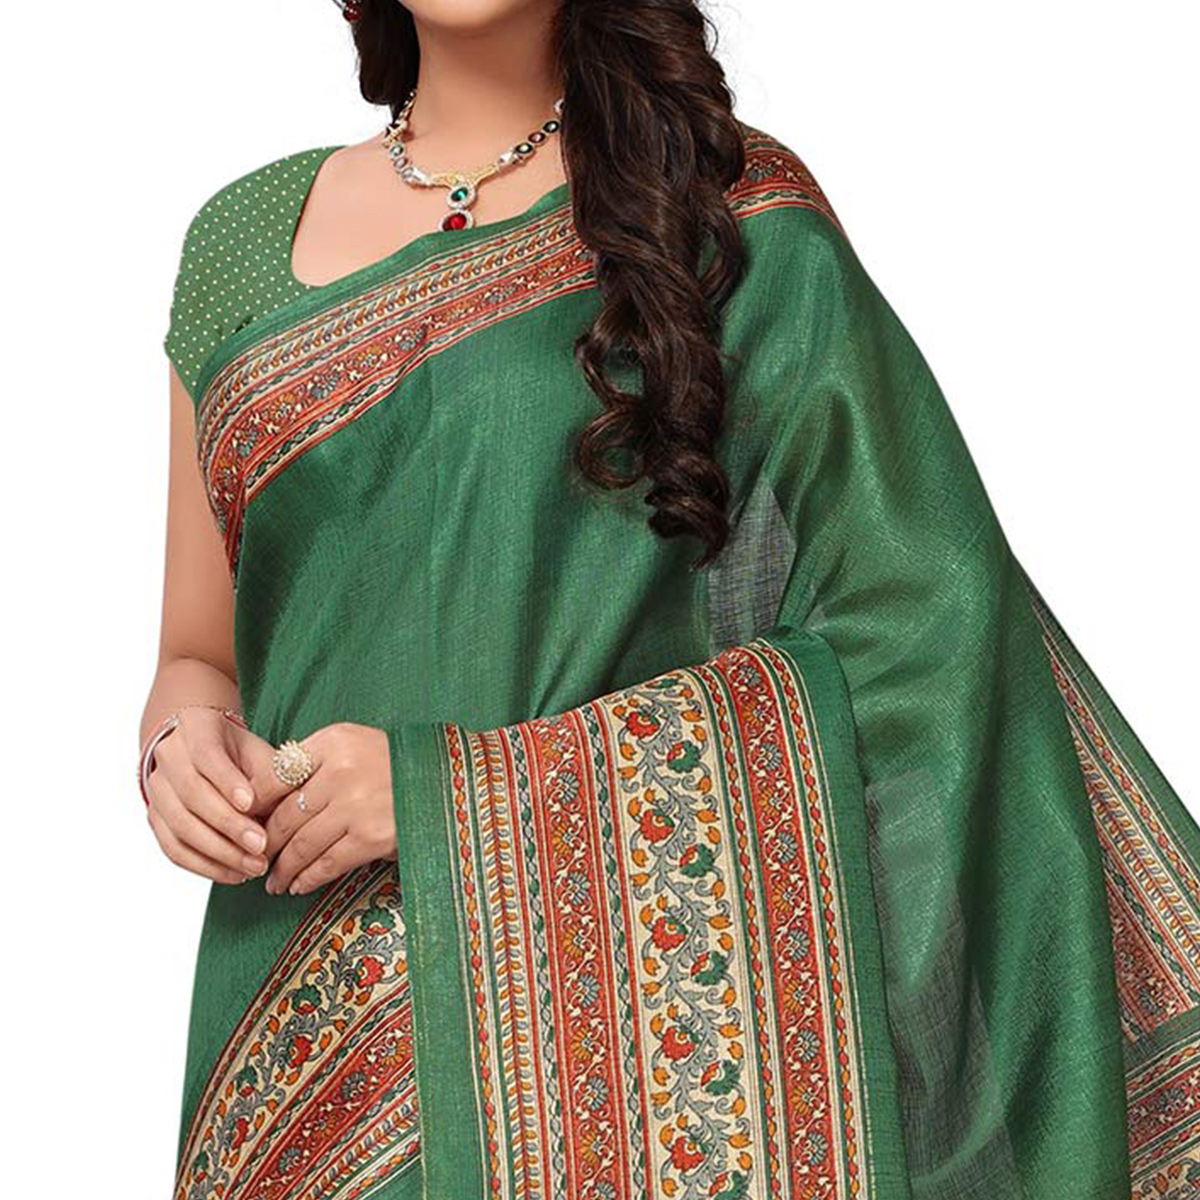 Refreshing Green Colored Festive Wear Printed Khadi Jute Silk Saree